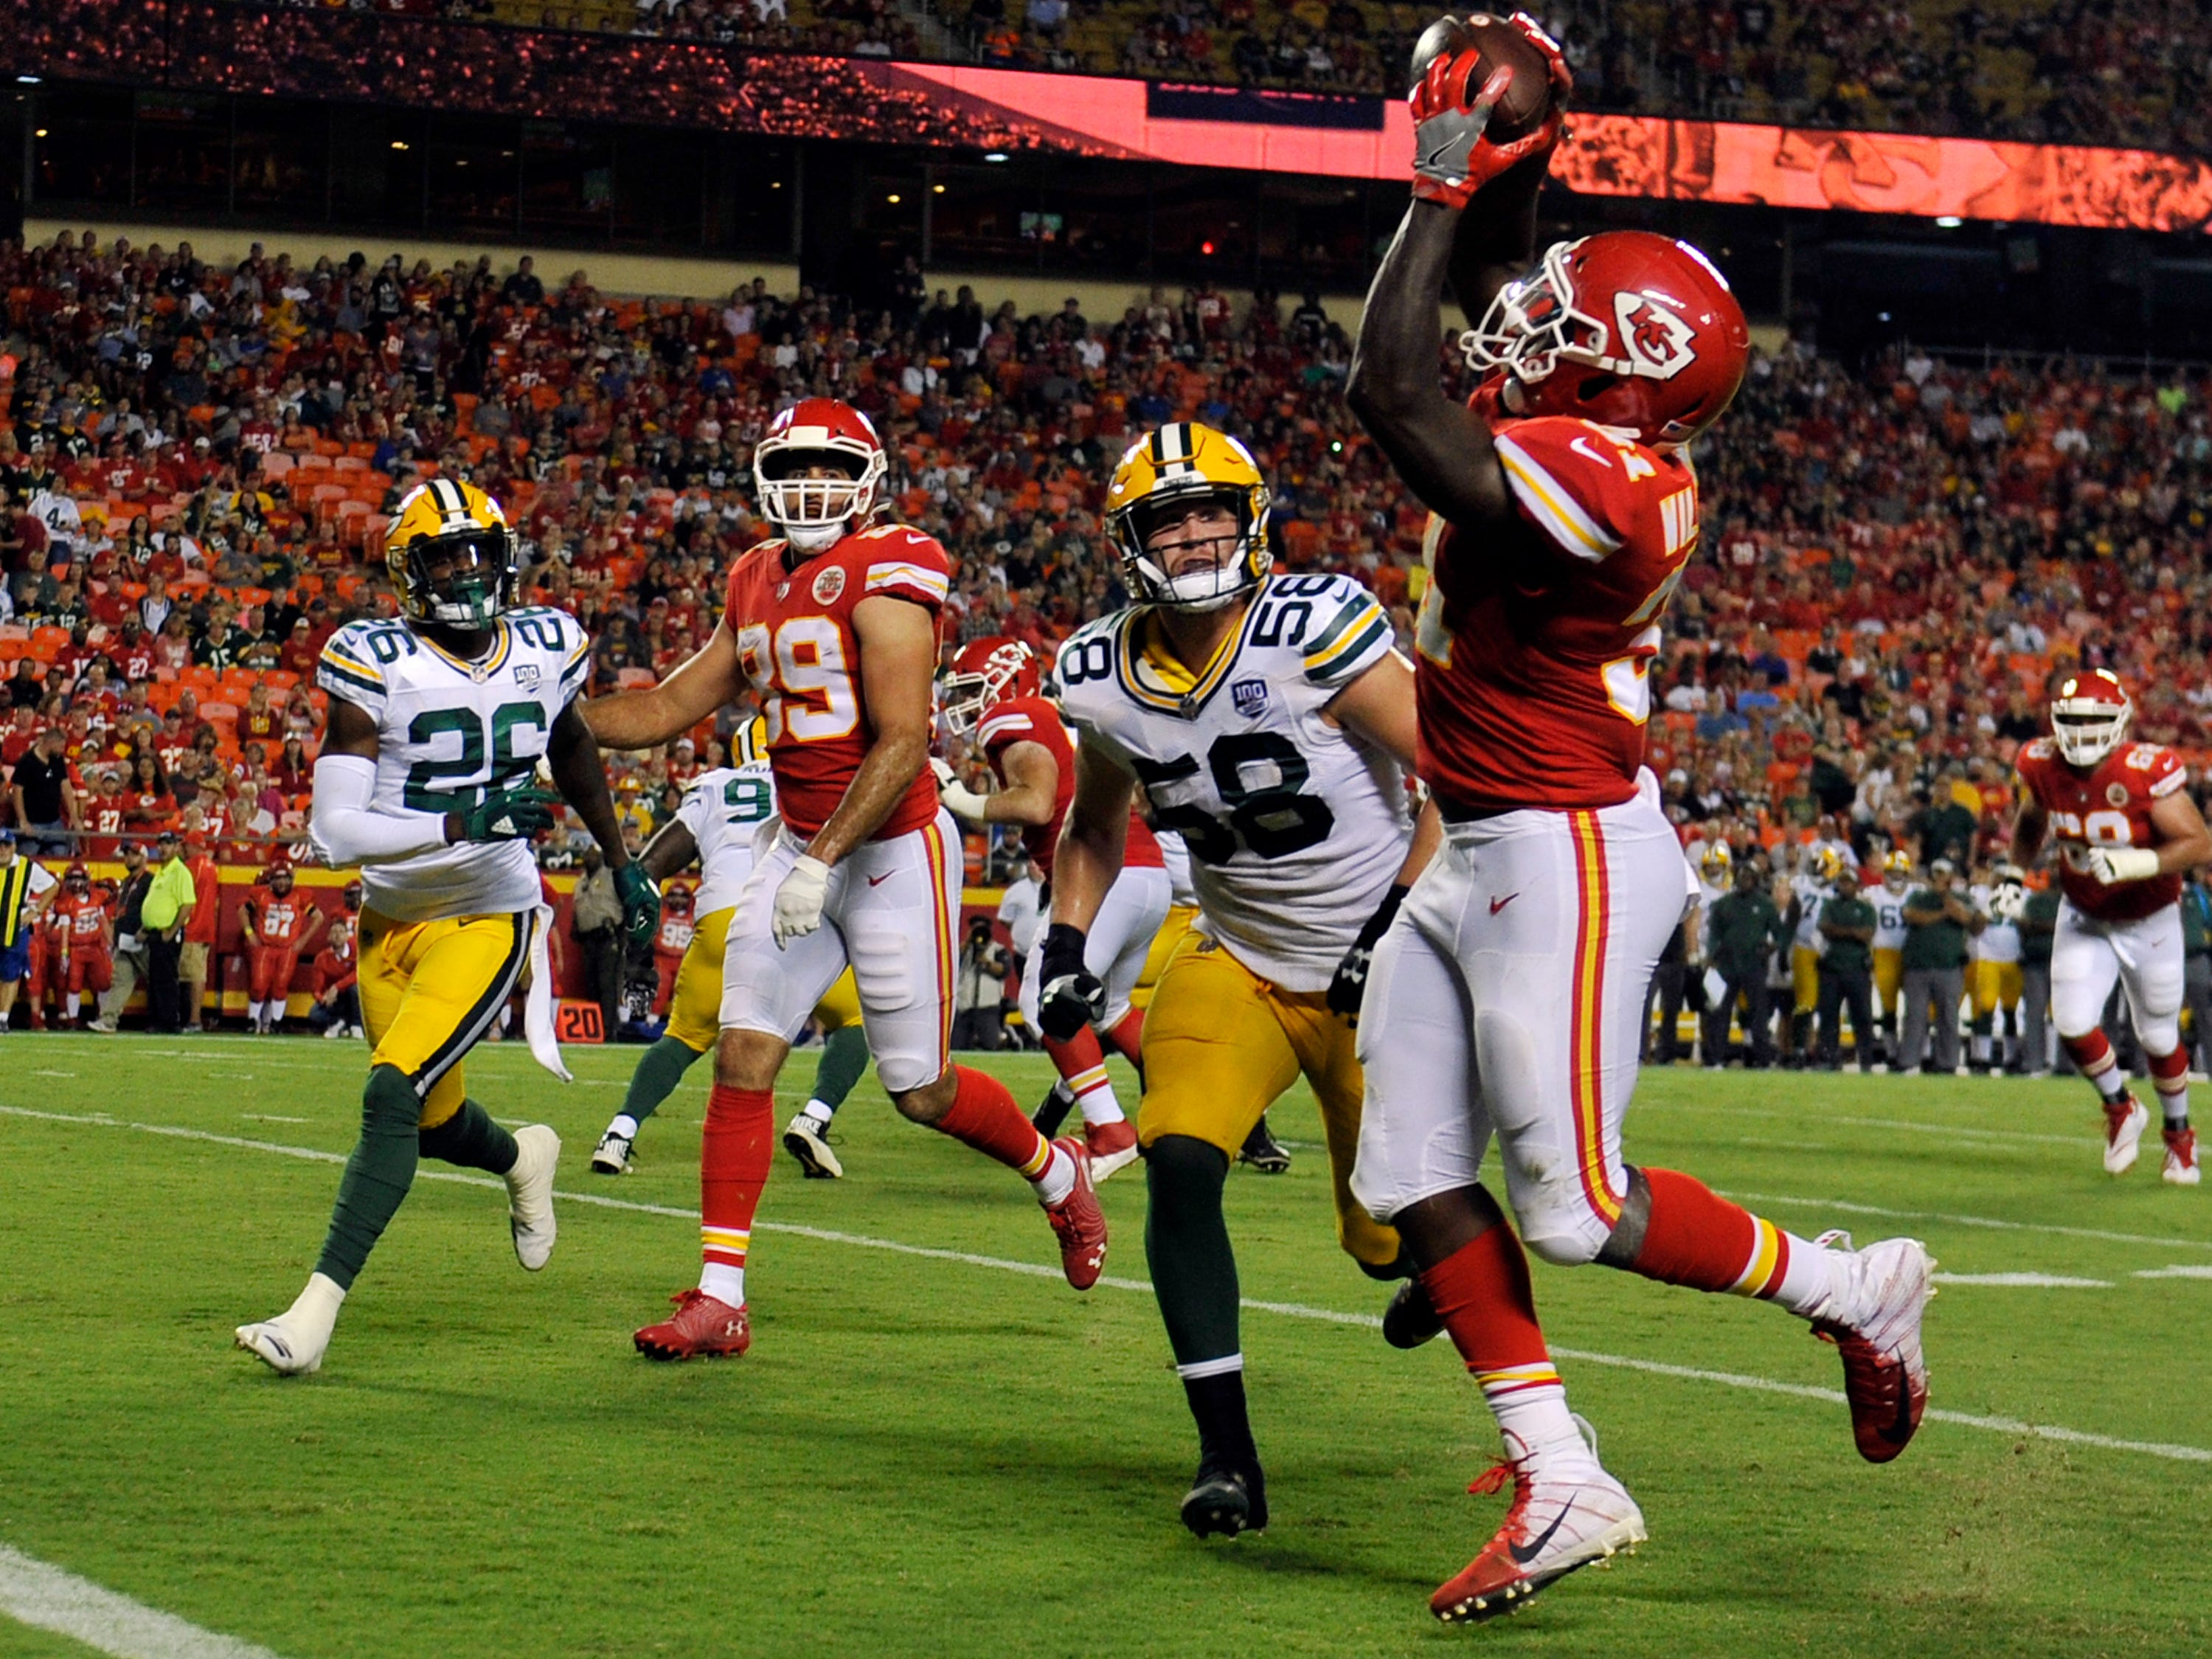 Kansas City Chiefs running back Darrel Williams (31) makes a touchdown catch in front of Green Bay Packers linebacker Greer Martini (58) during the first half of an NFL preseason football game in Kansas City, Mo., Thursday, Aug. 30, 2018.